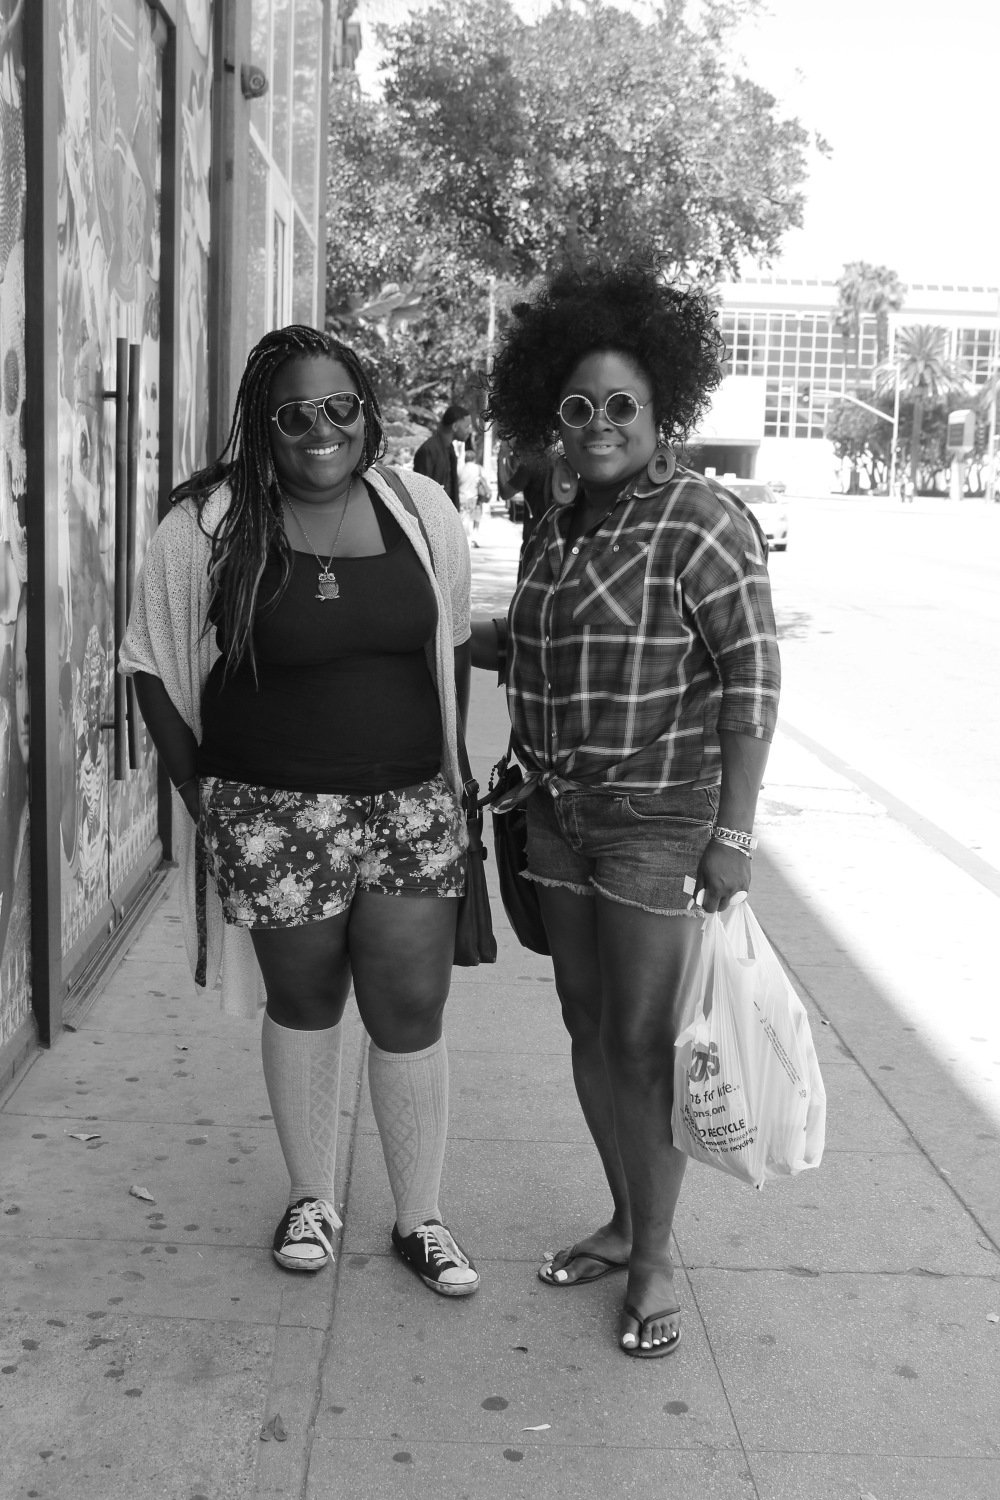 Danielle and Morgan were on their way to audition for NBC's 'The Voice' . Next time you see us